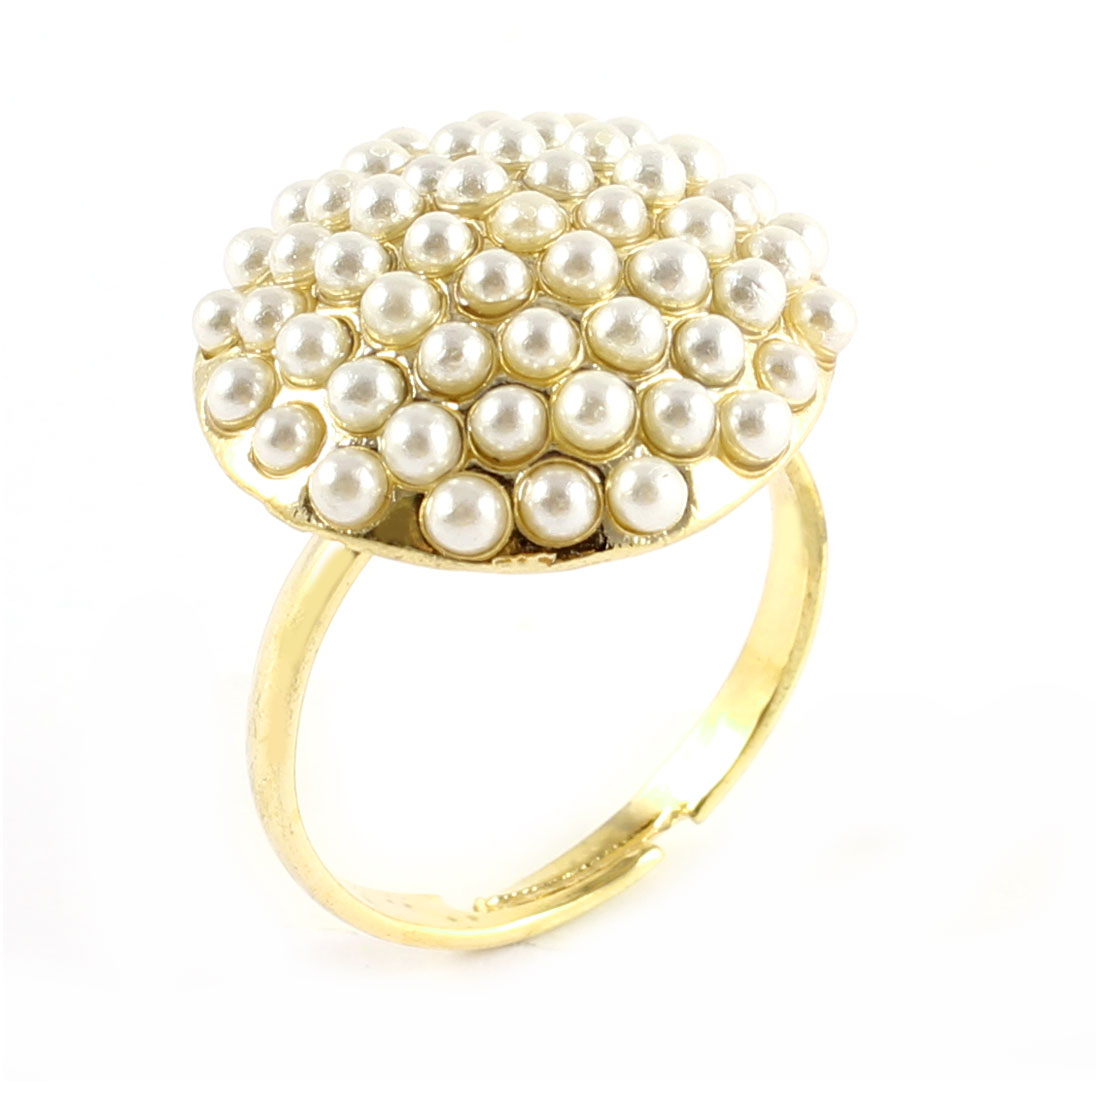 Ladies White Faux Pearl Inlaid Mushroom Shaped Decor Gold Tone Metal Finger Ring